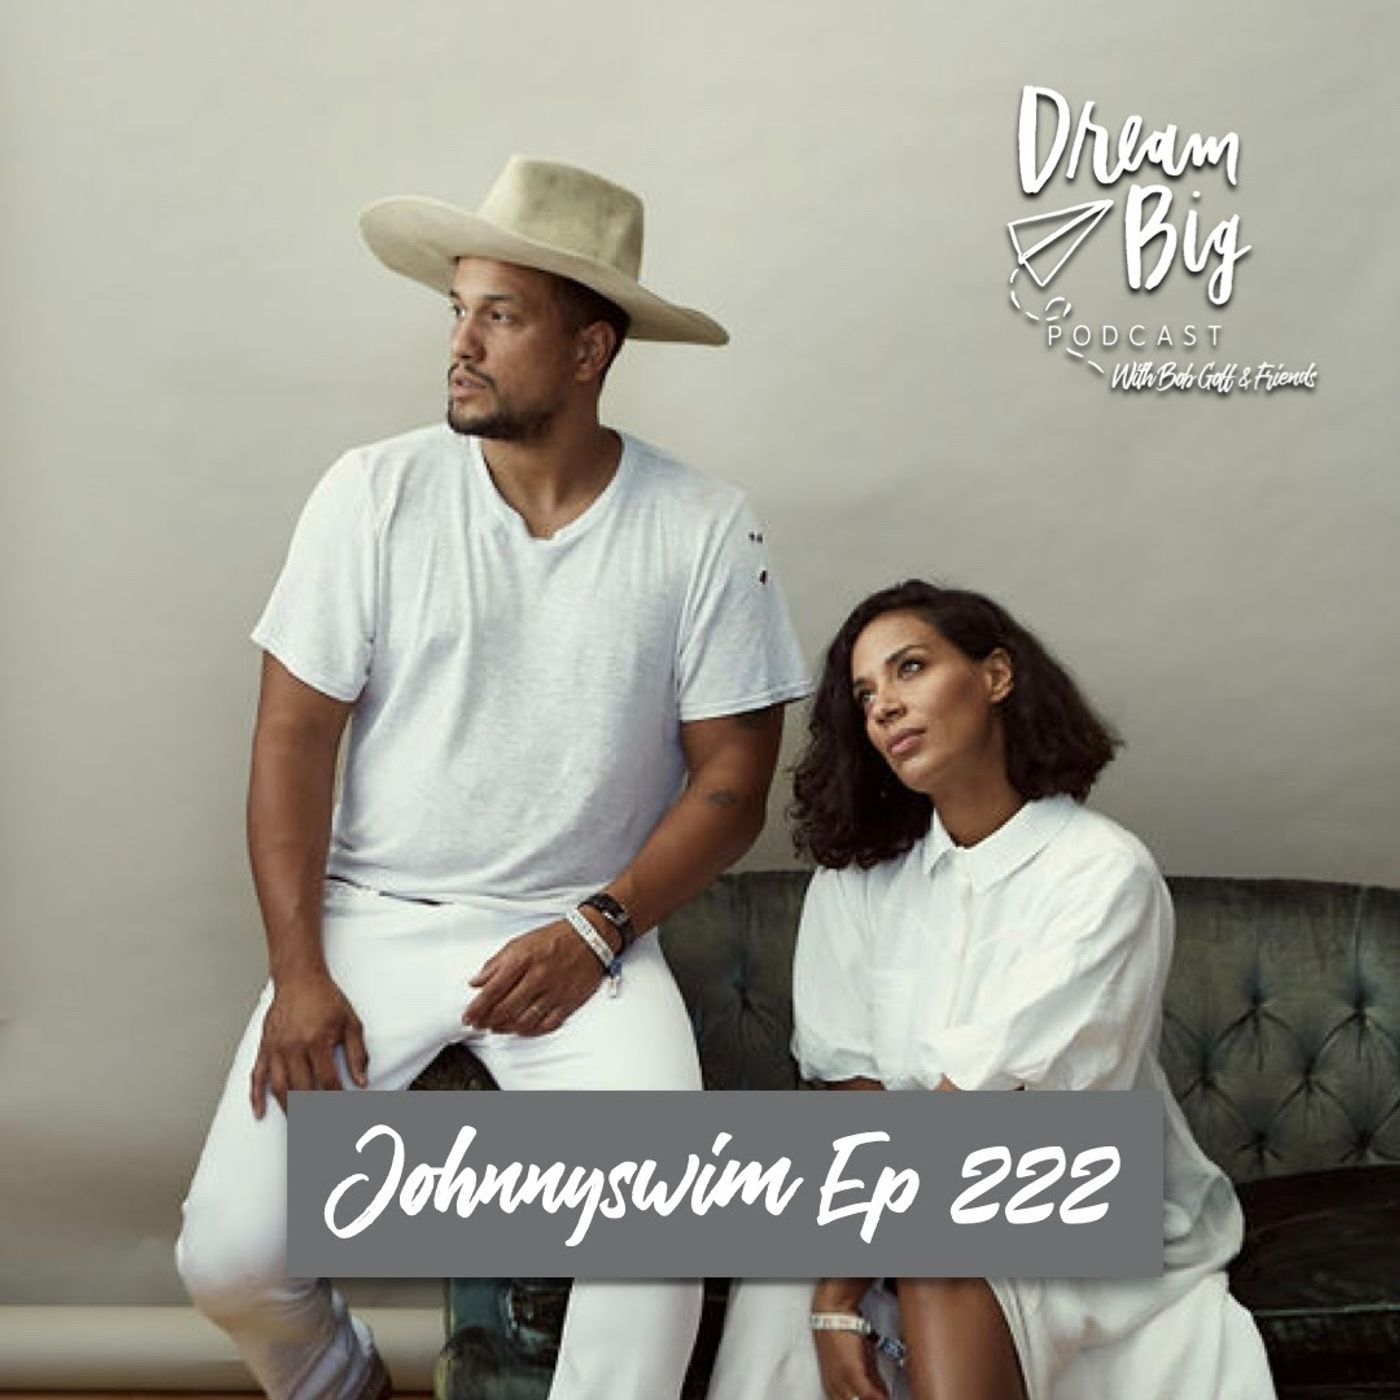 Johnnyswim - Dreaming Big for Family and Friendship